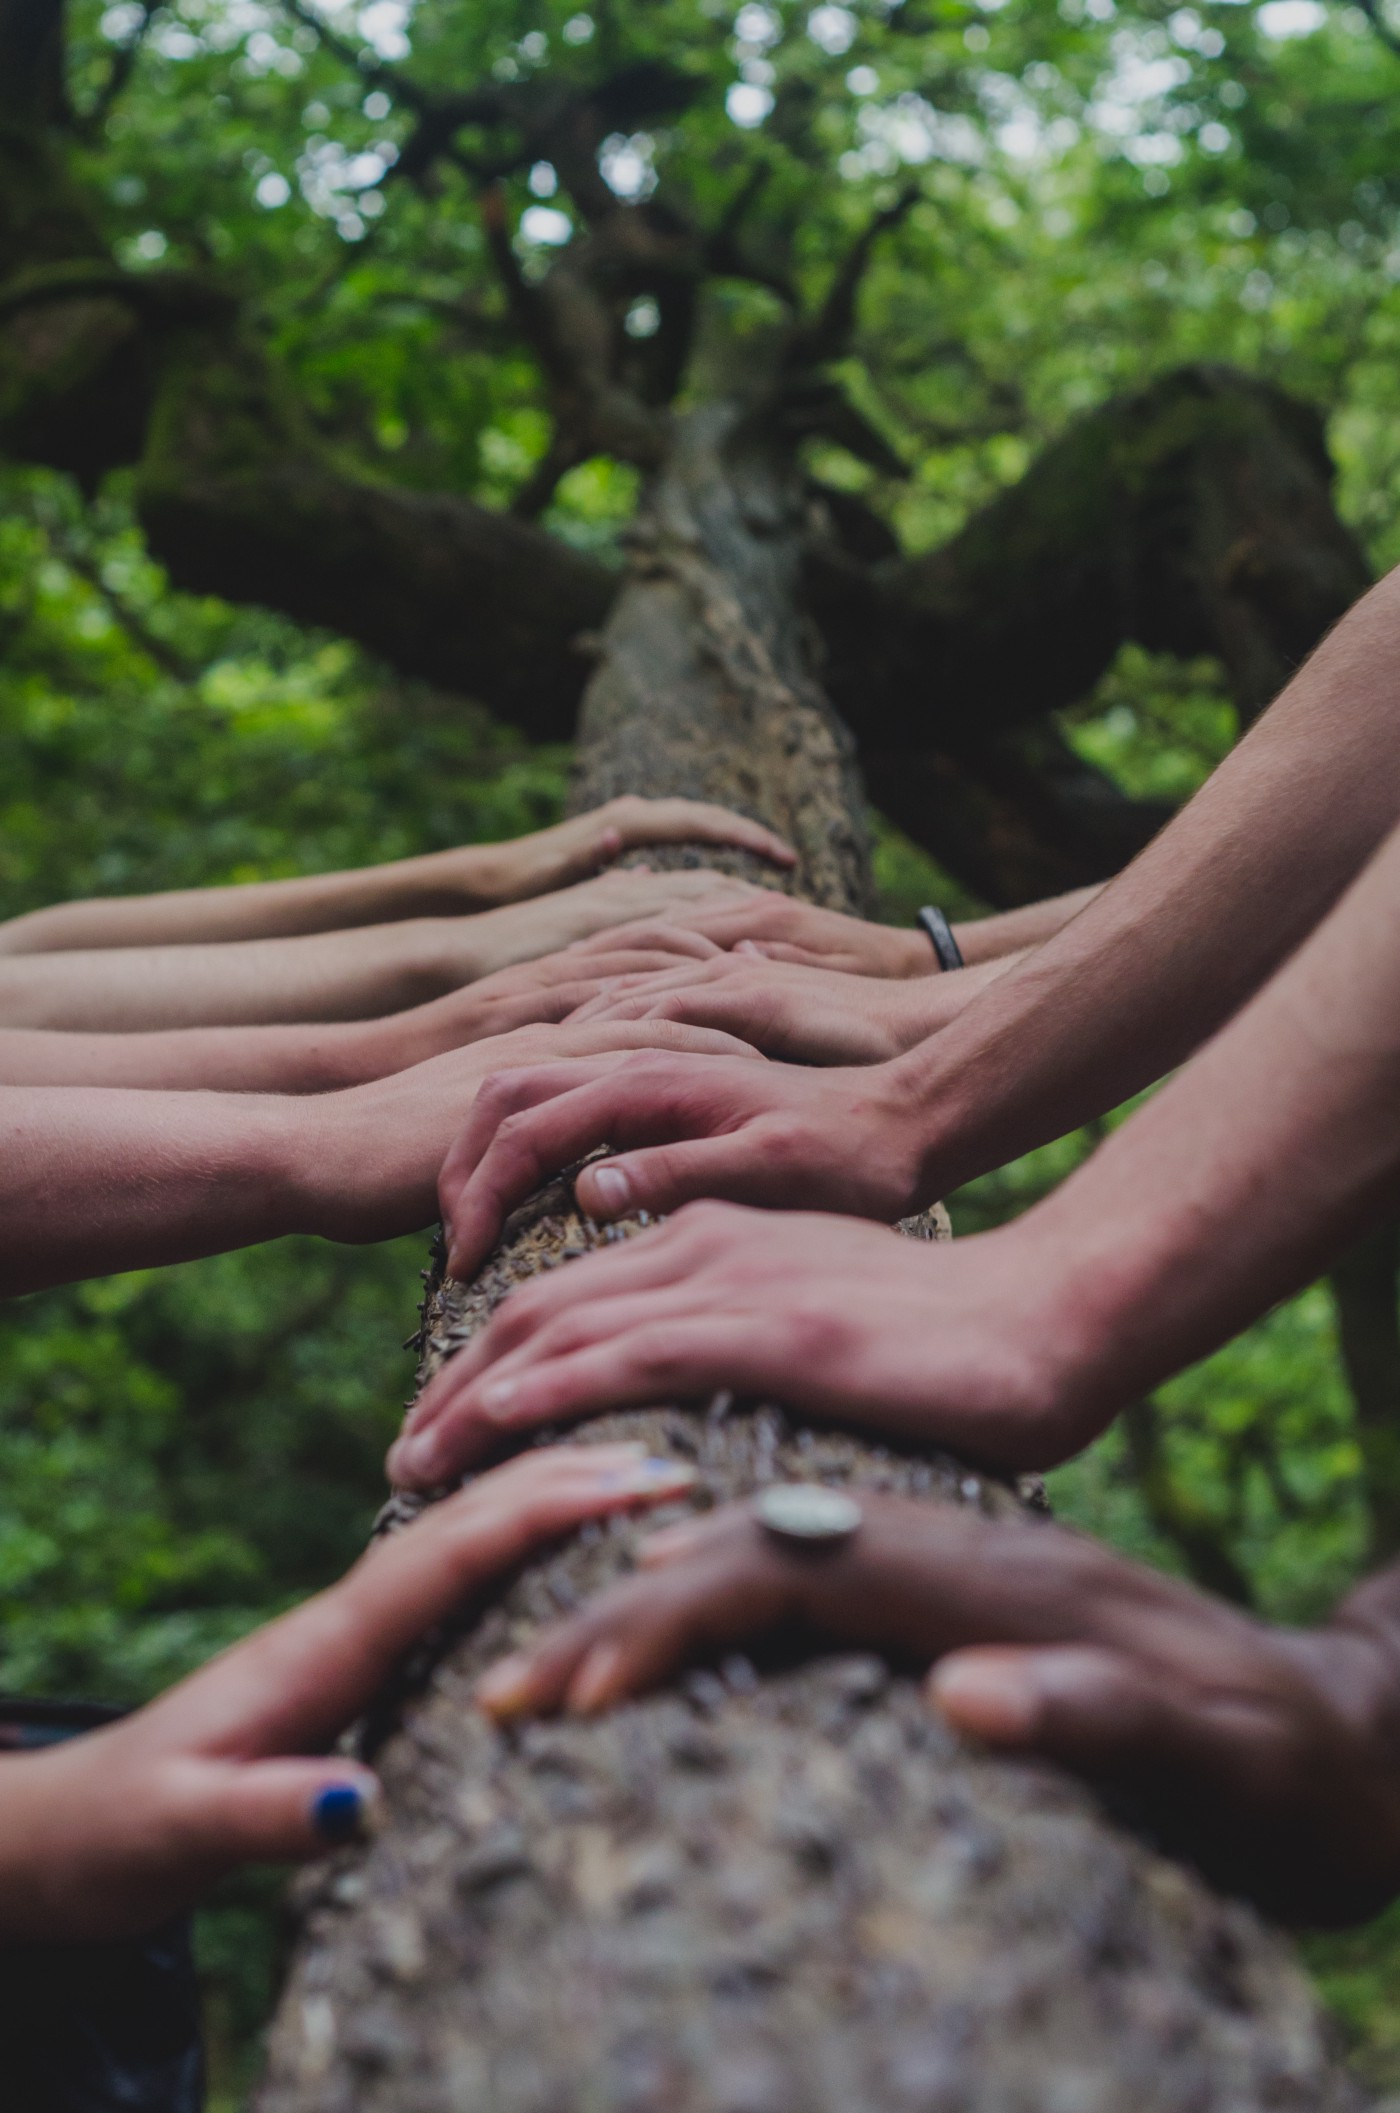 Ten hands placed alongside each other up a tree trunk